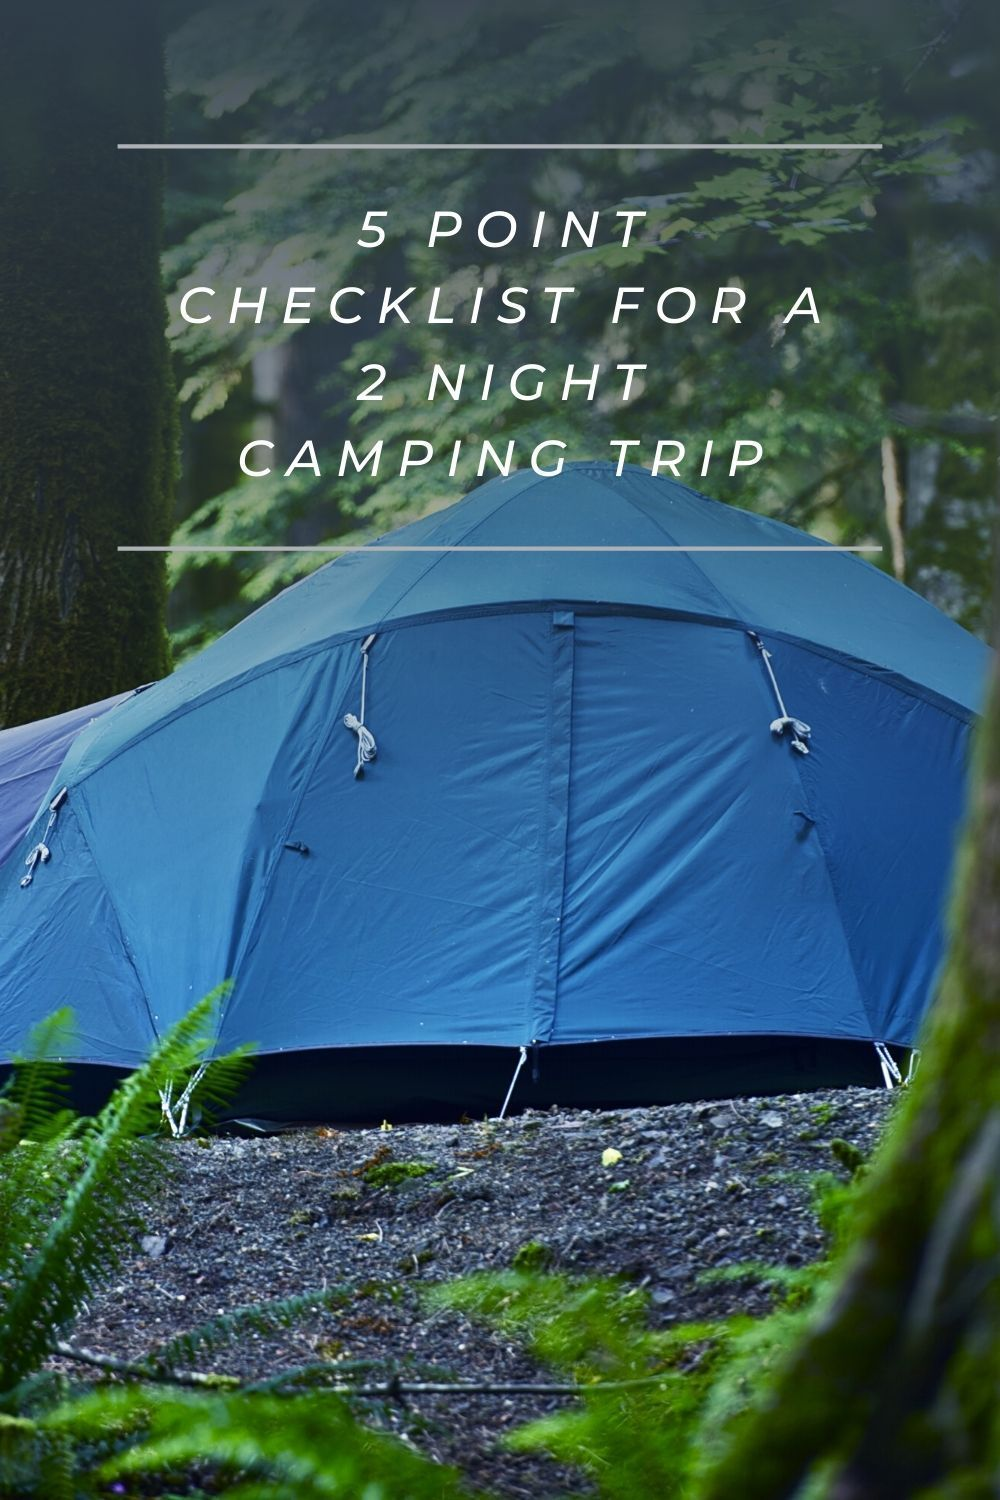 5 Point Checklist For A 2 Night Camping Trip Camping Trips Camping Checklist Camping Essentials Family